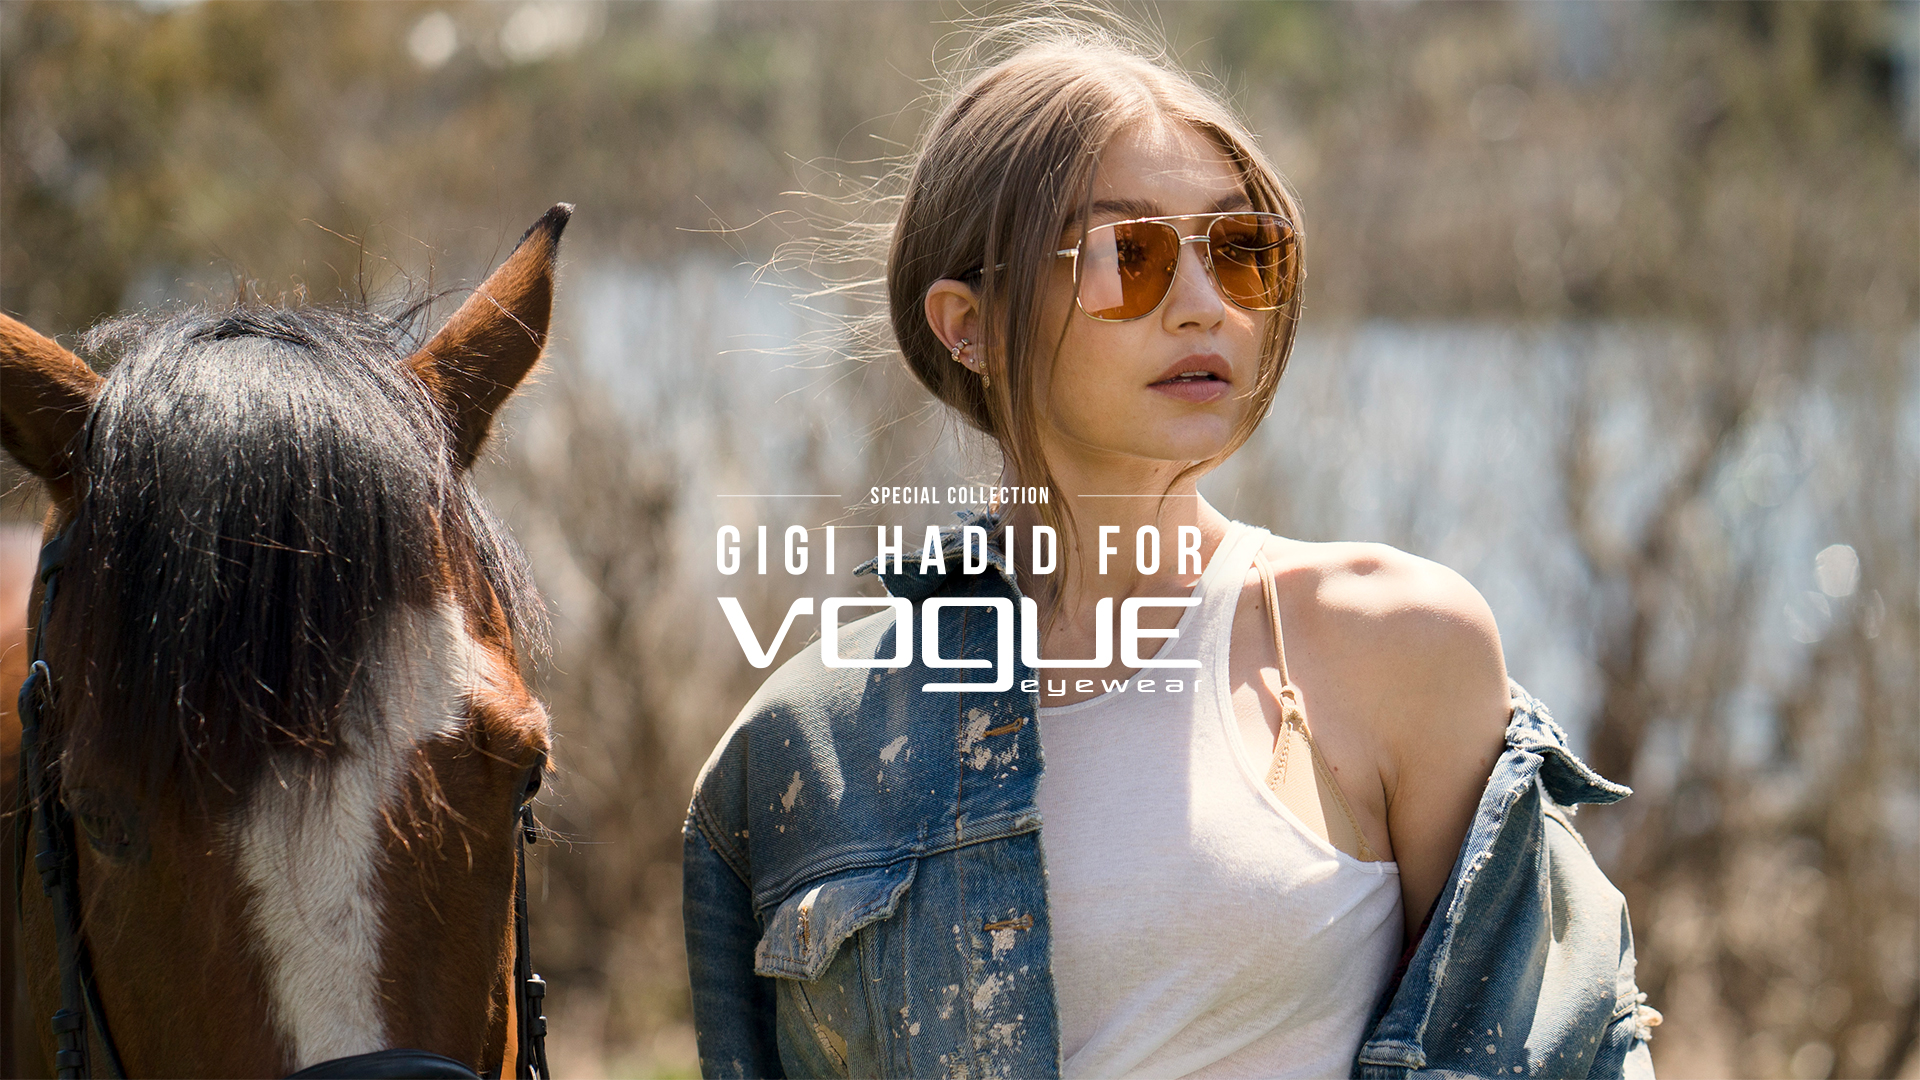 0e2281cd4d Vogue Eyewear Special Collection designed by Gigi Hadid - OnlyLens